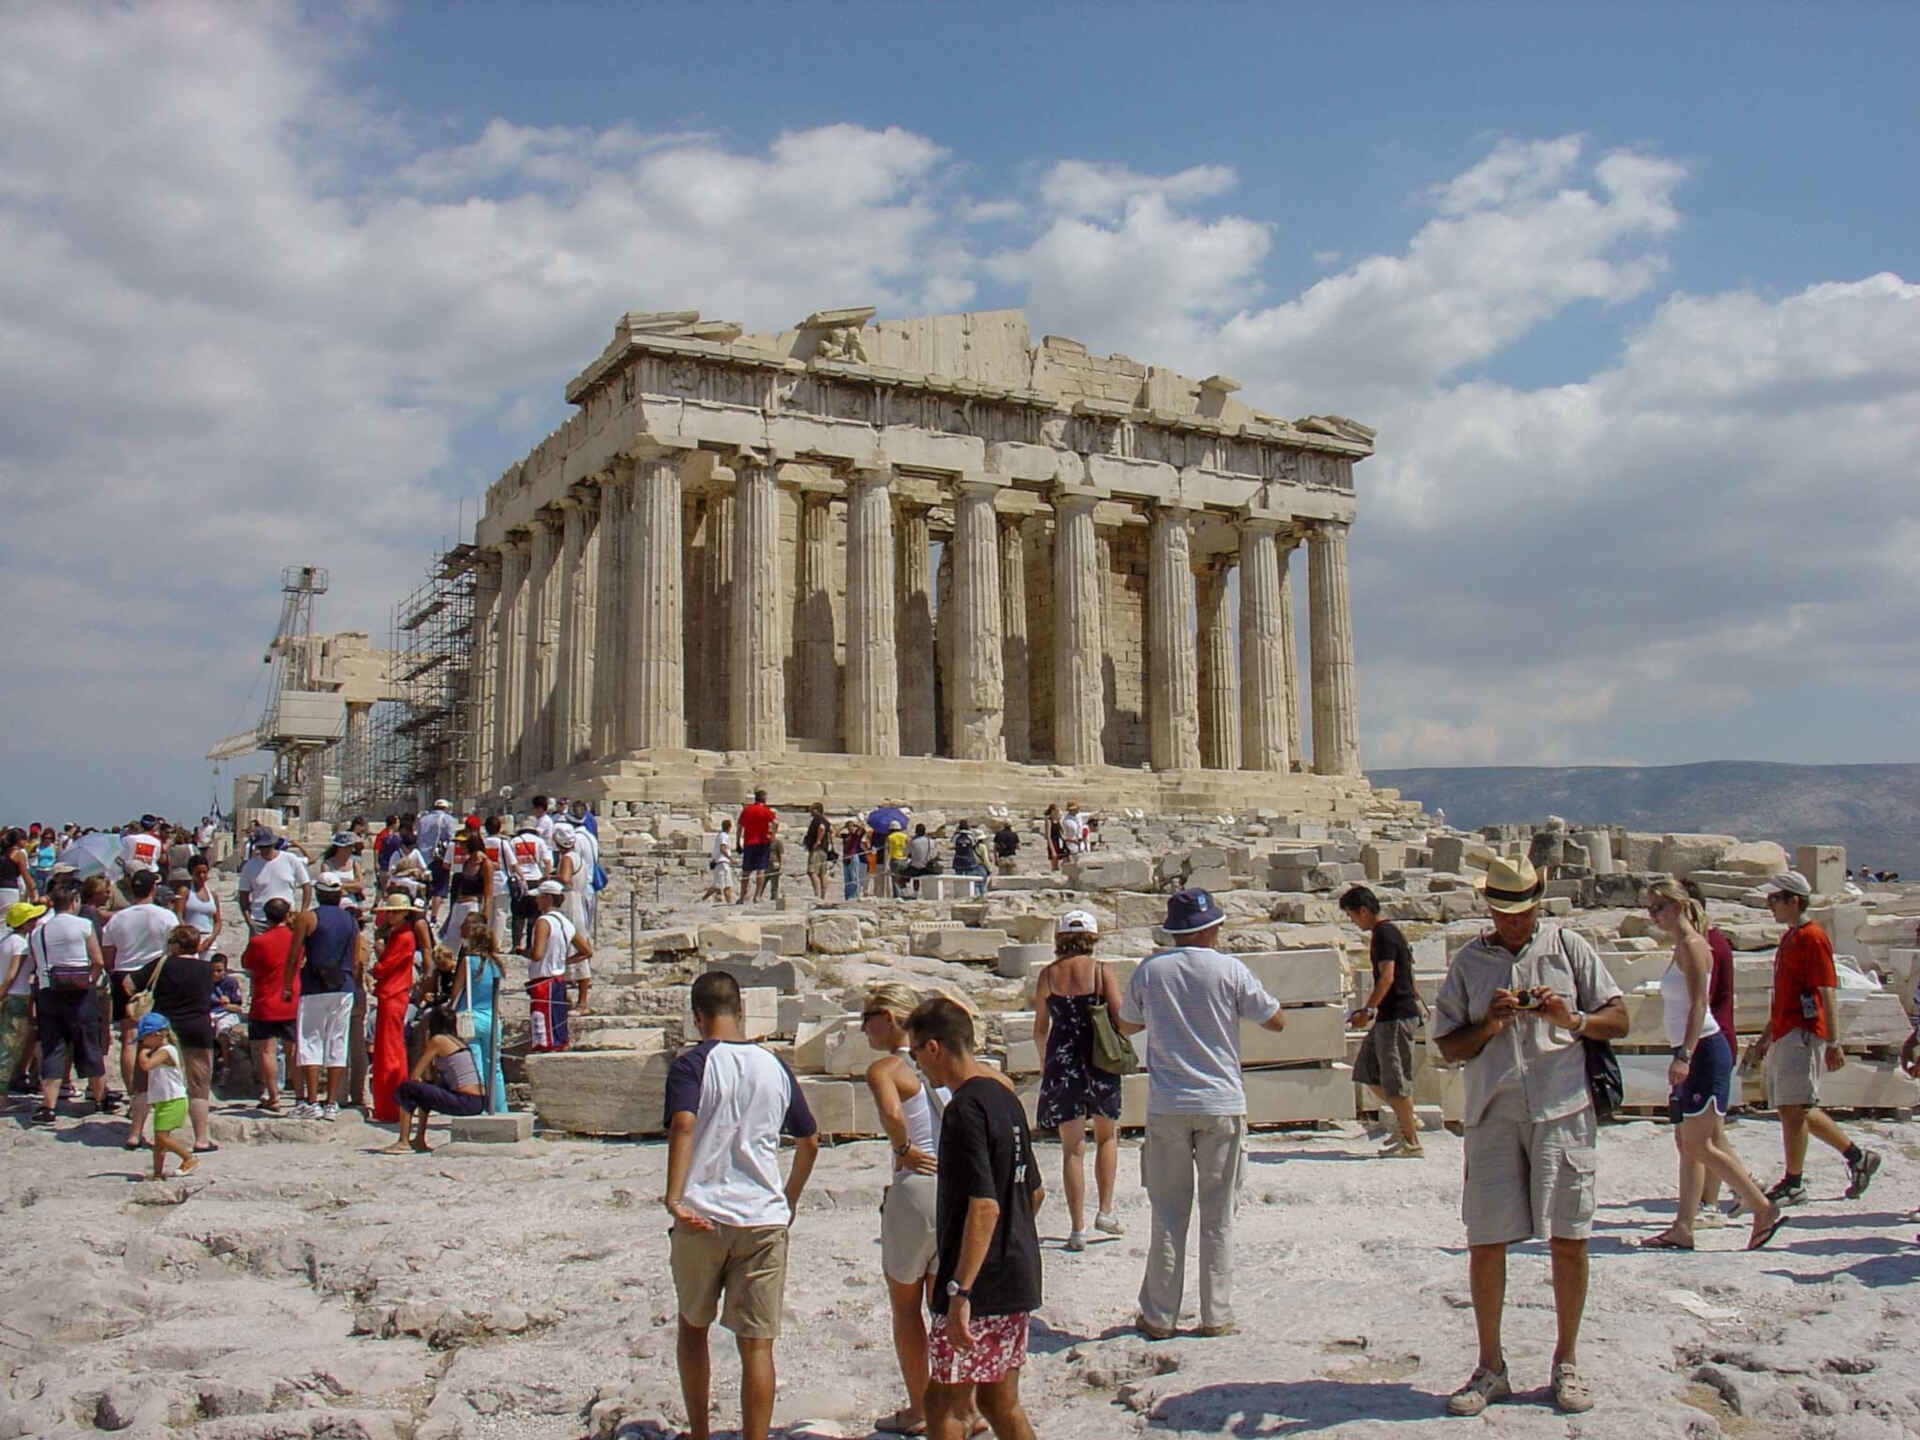 Take an Acropolis guided tour with your kids to see the impressive Parthenon.